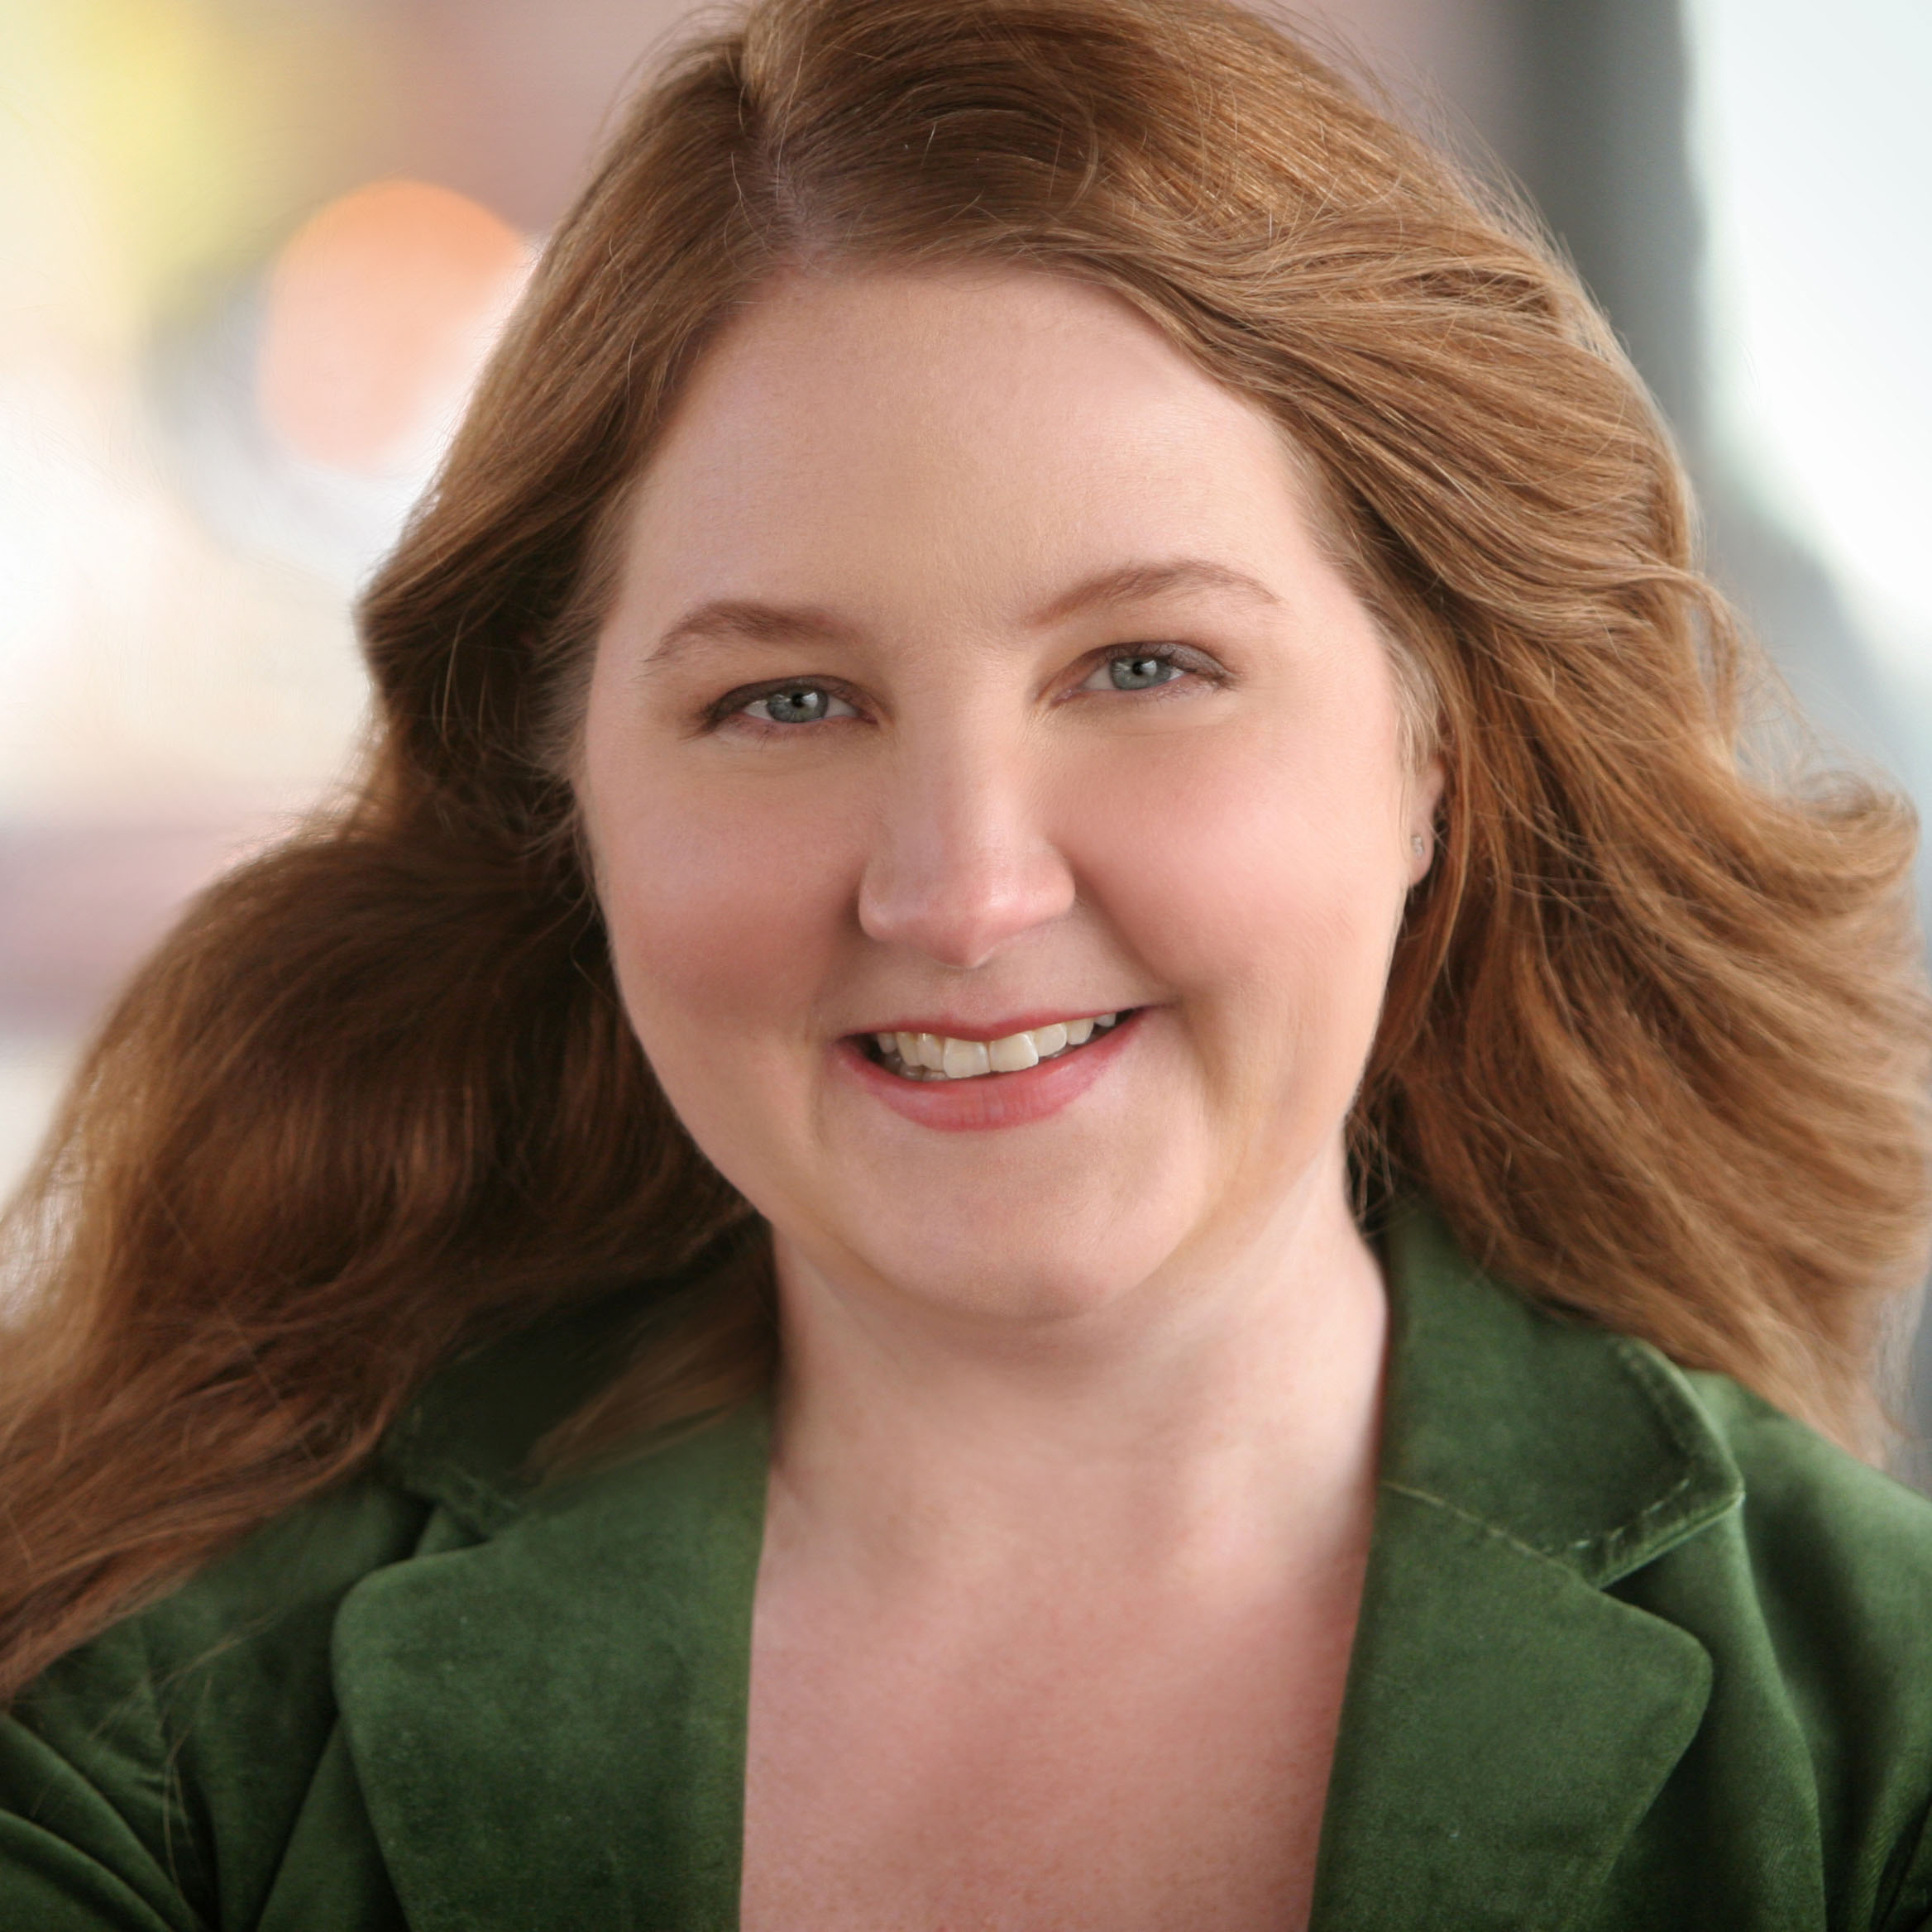 Colleen O'Shaughnessy, soprano